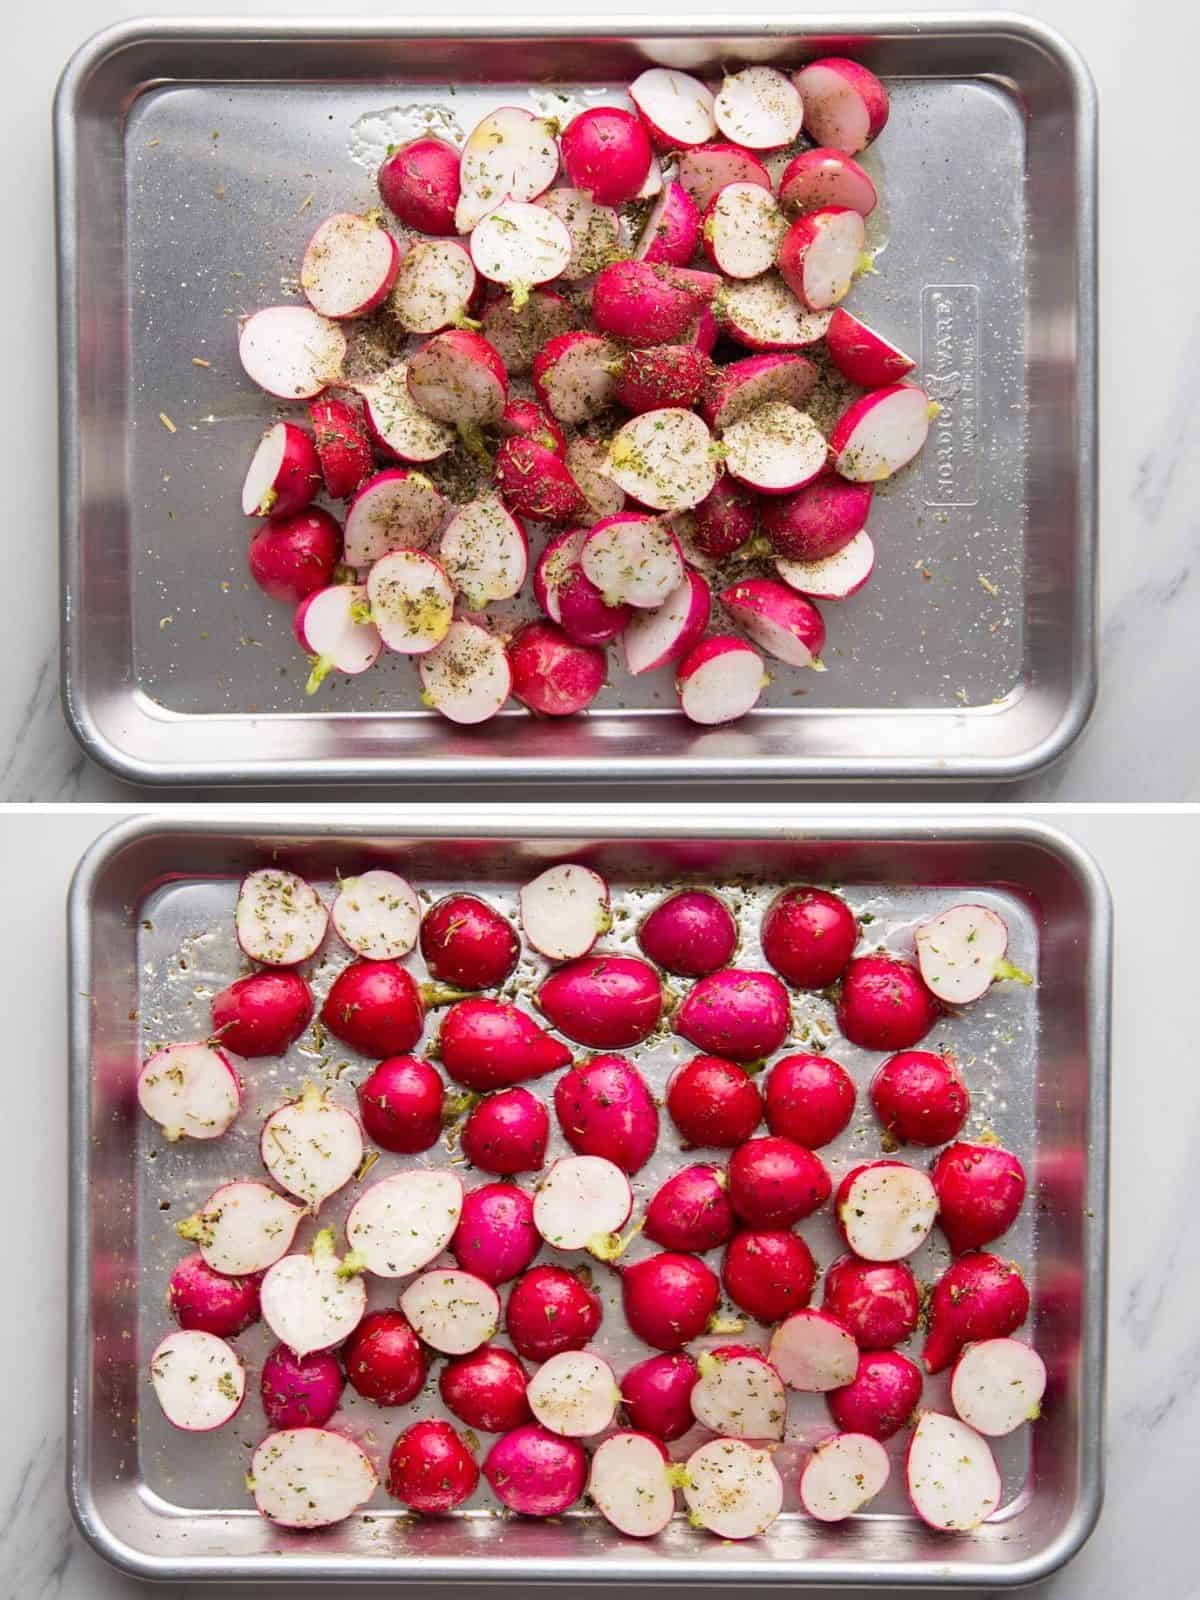 Steps how to season and roast radishes